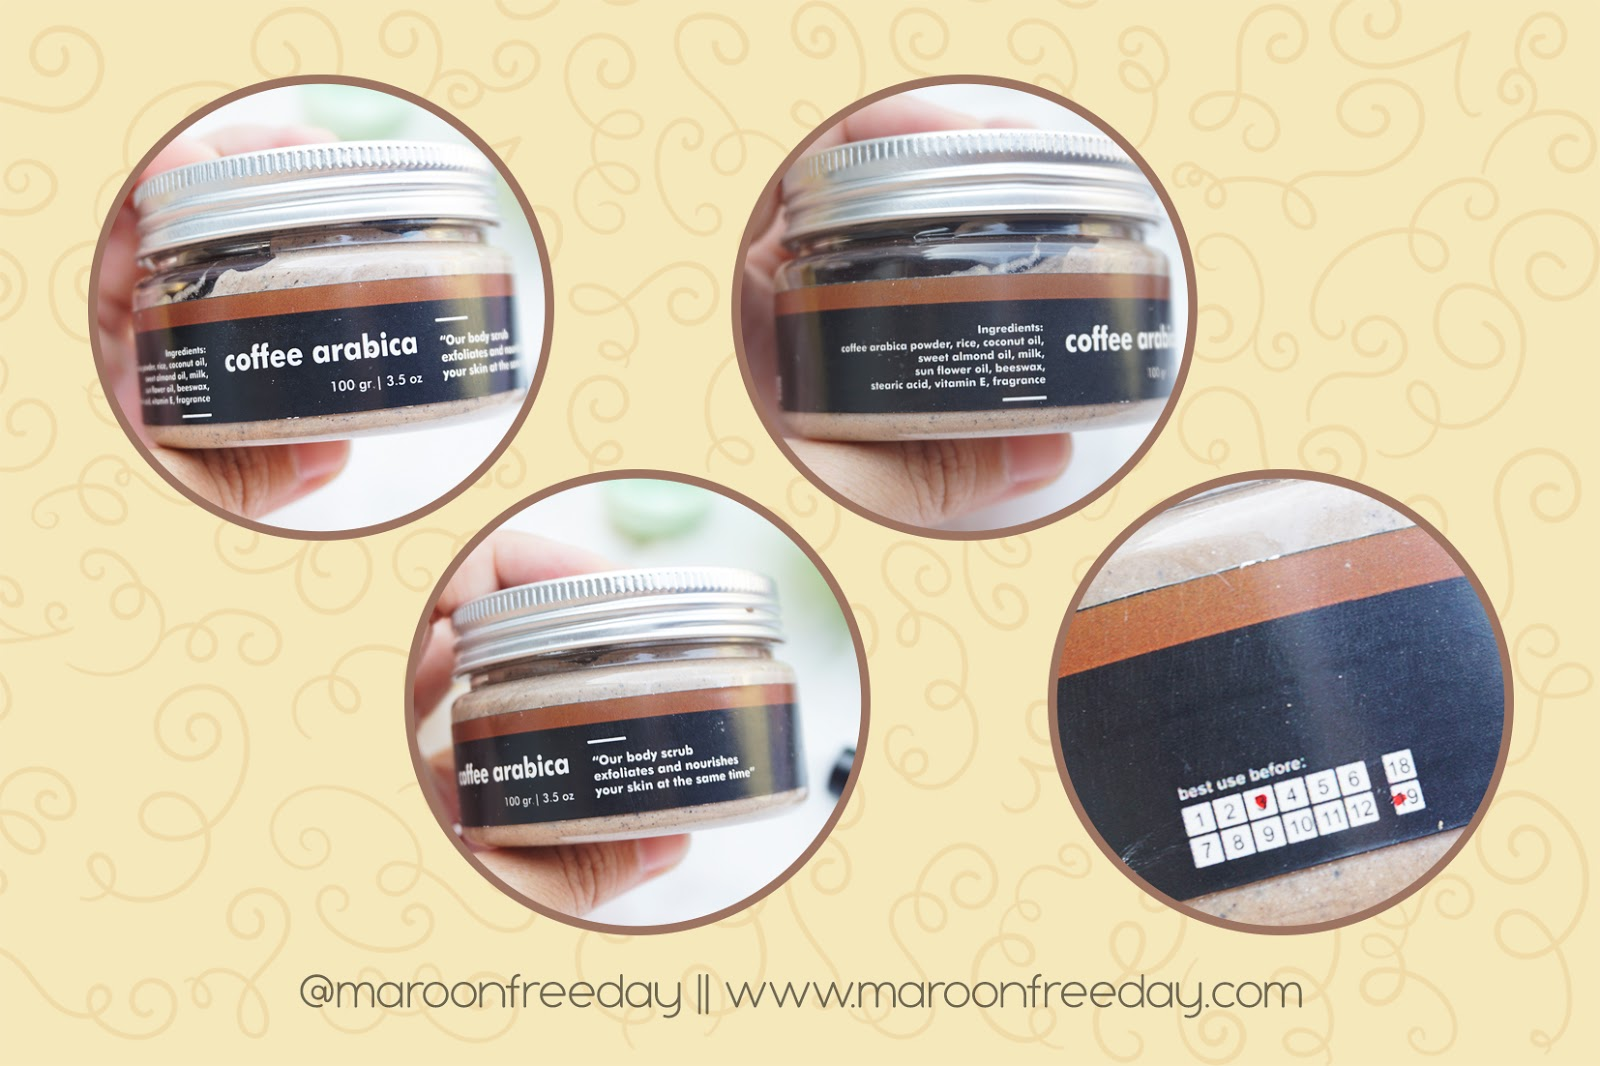 Review The Body Heart Body Scrub